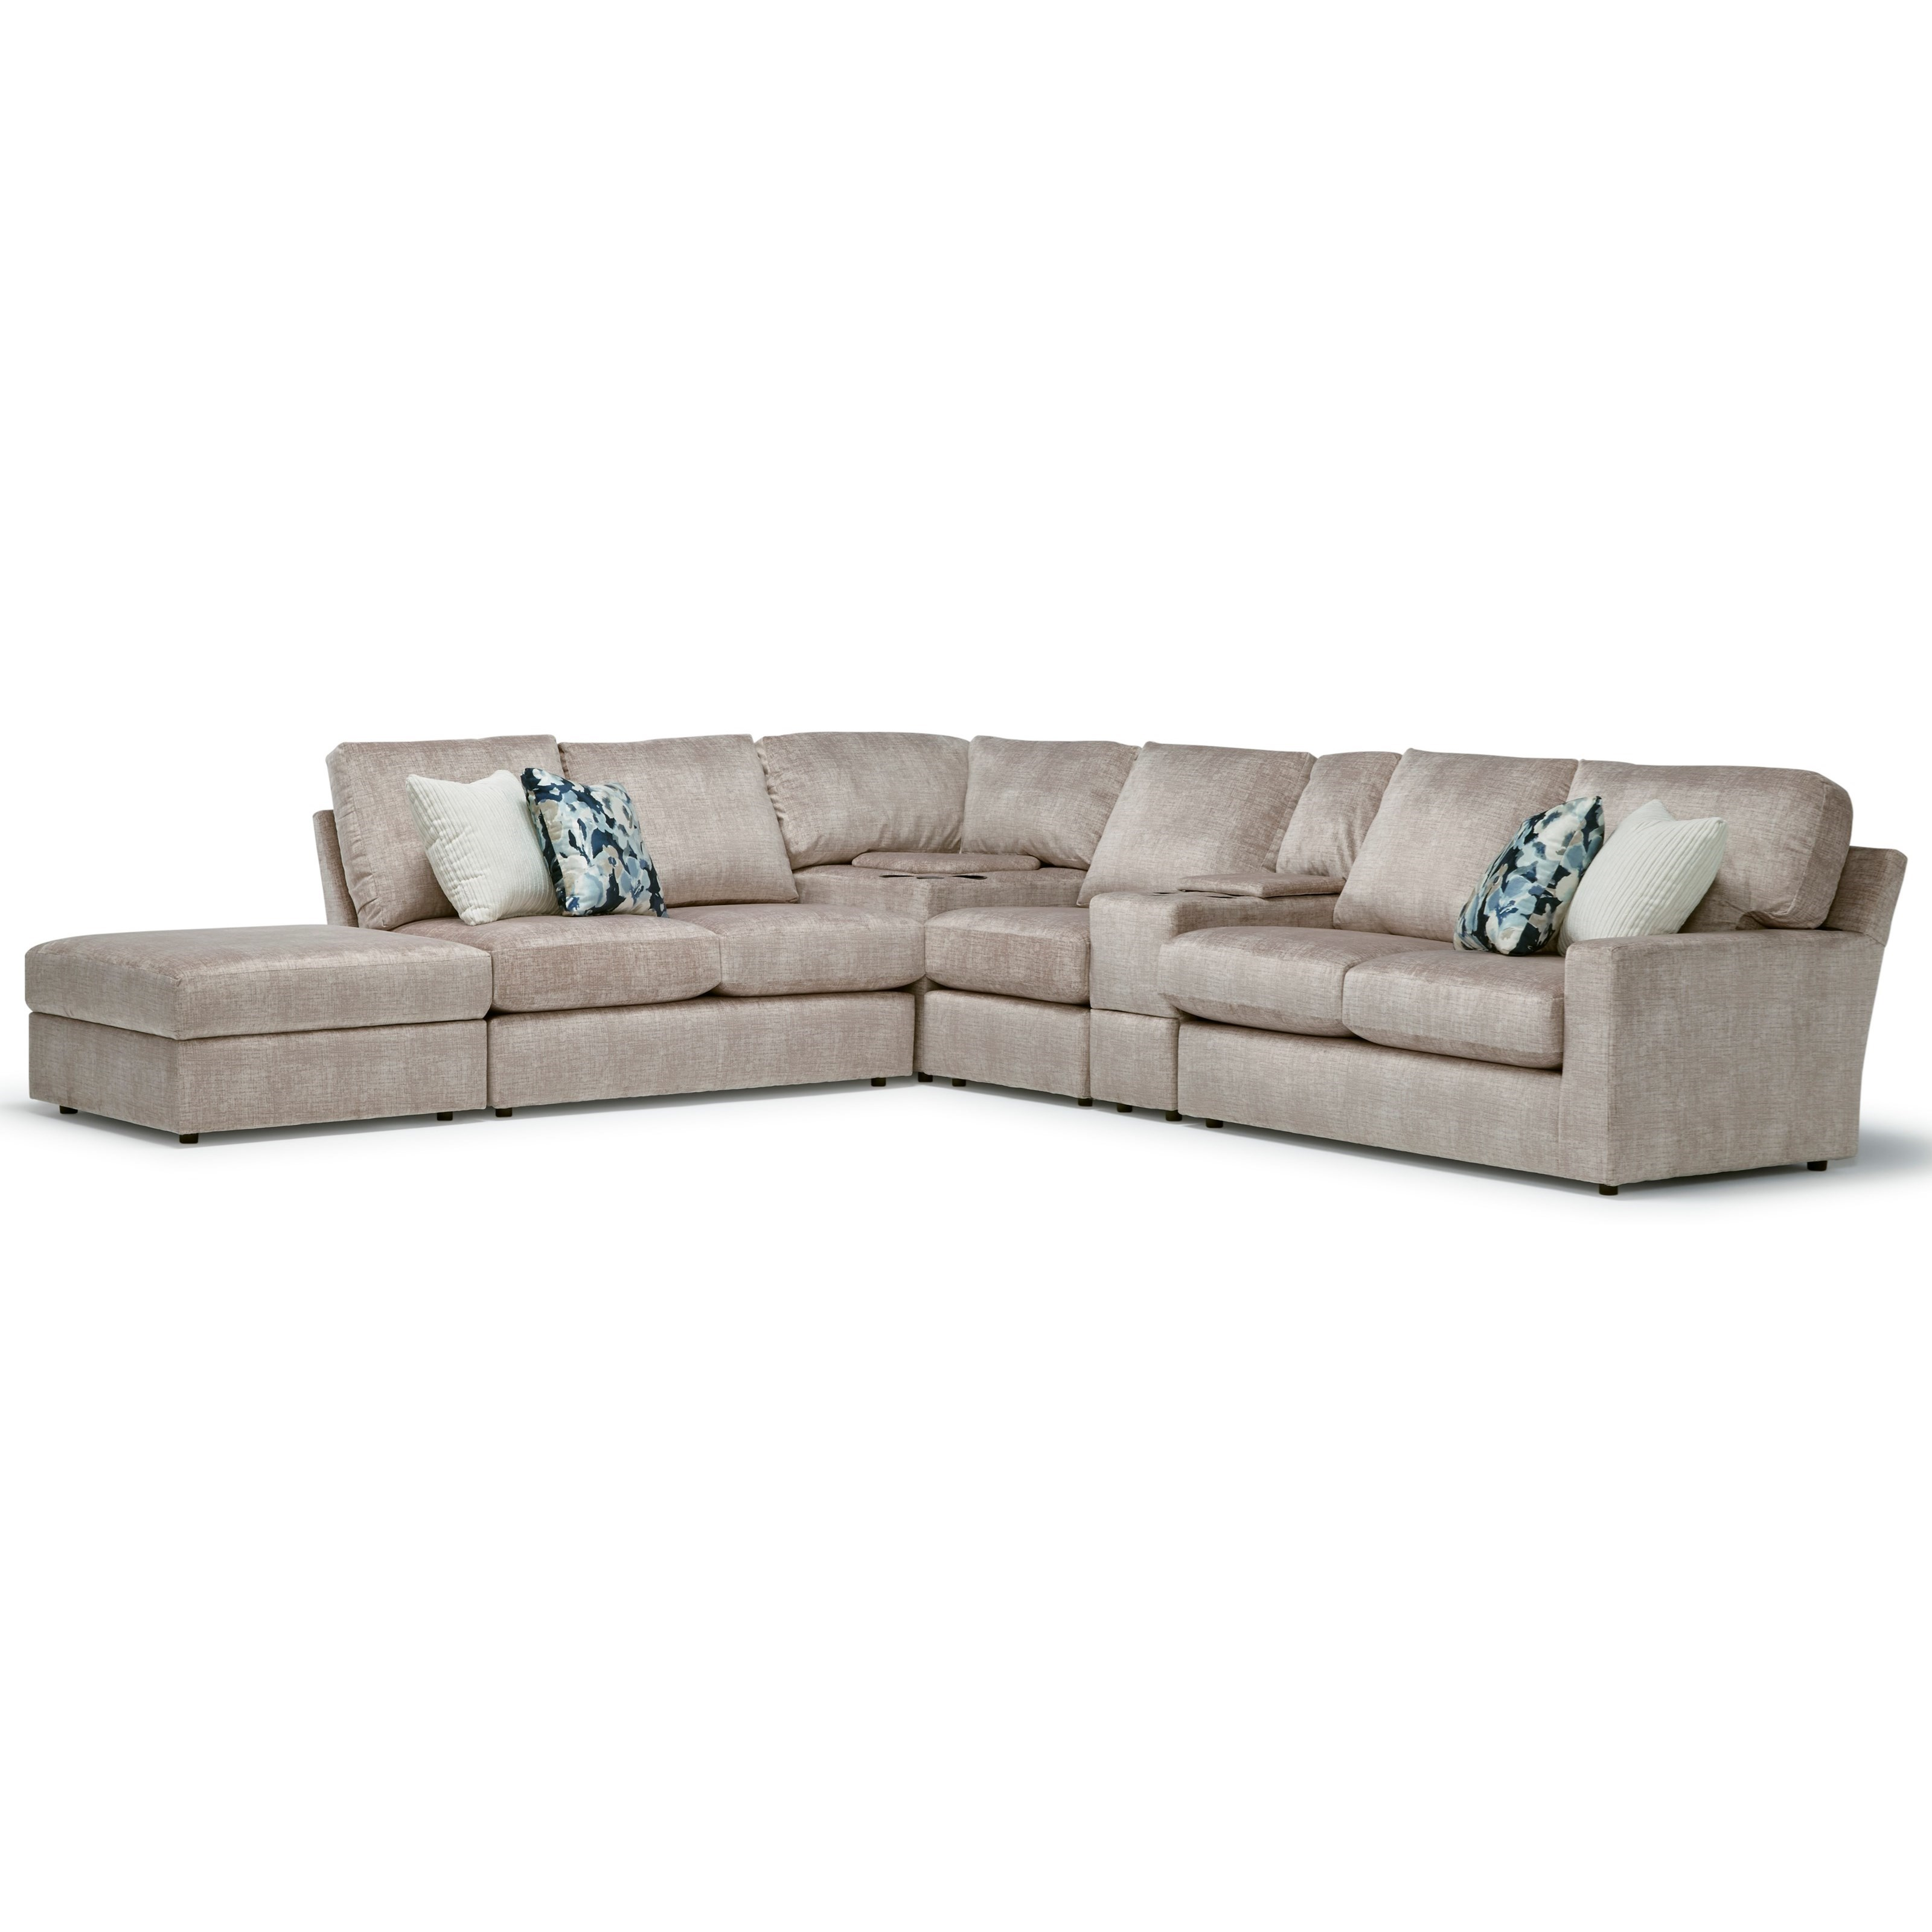 Dovely 5-Seat Sofa w/ Wireless Charge & LAF Ottoman by Best Home Furnishings at Steger's Furniture